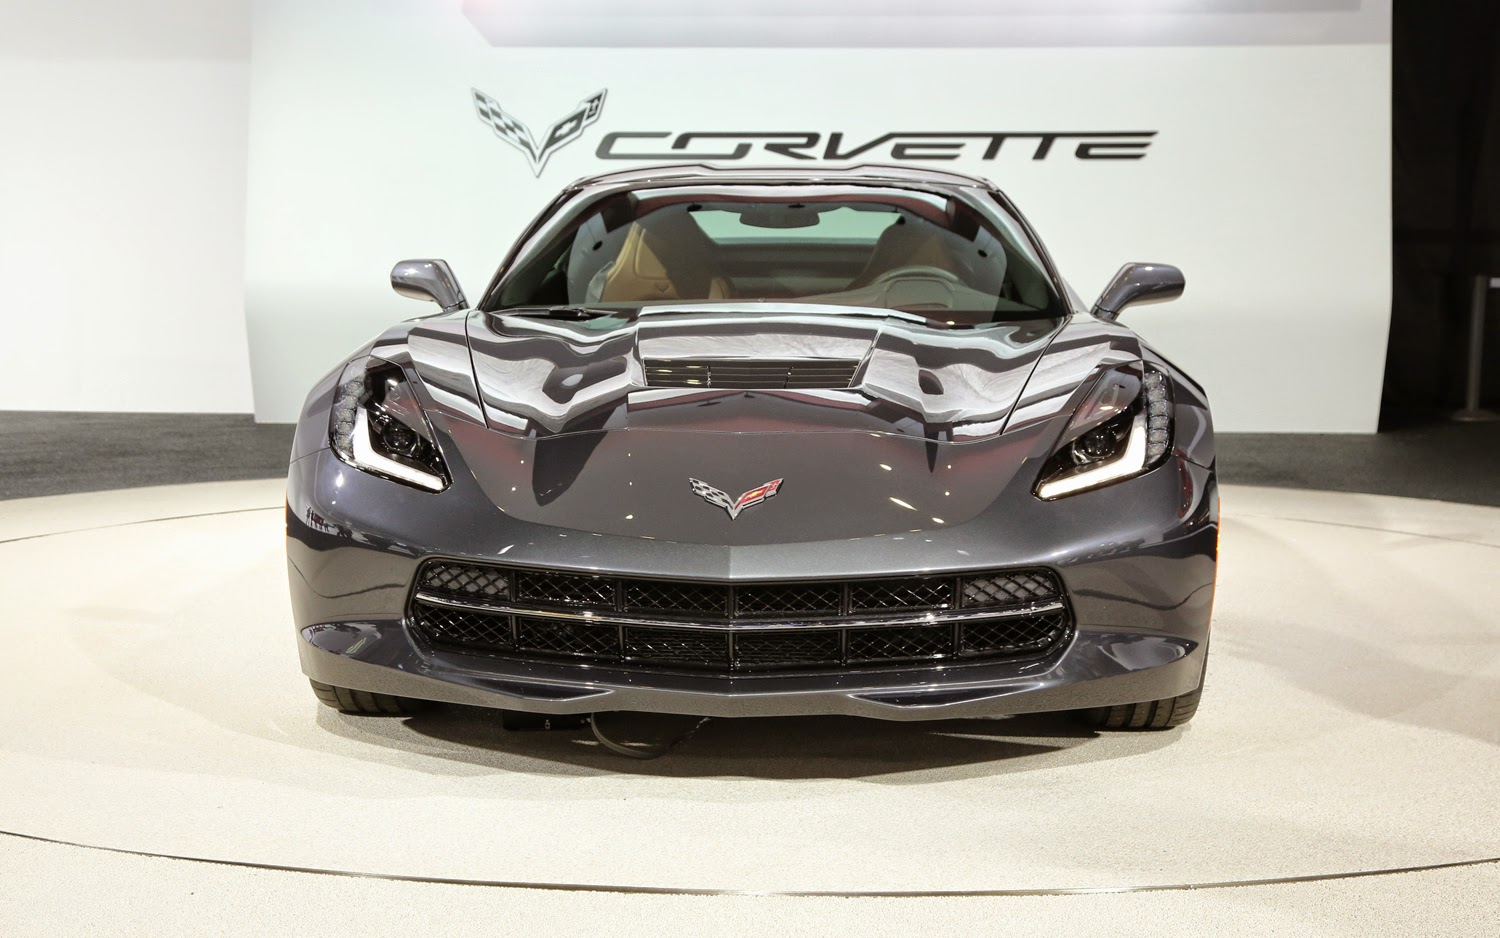 Mobl Mewah Chevrolet Corvette Stingray